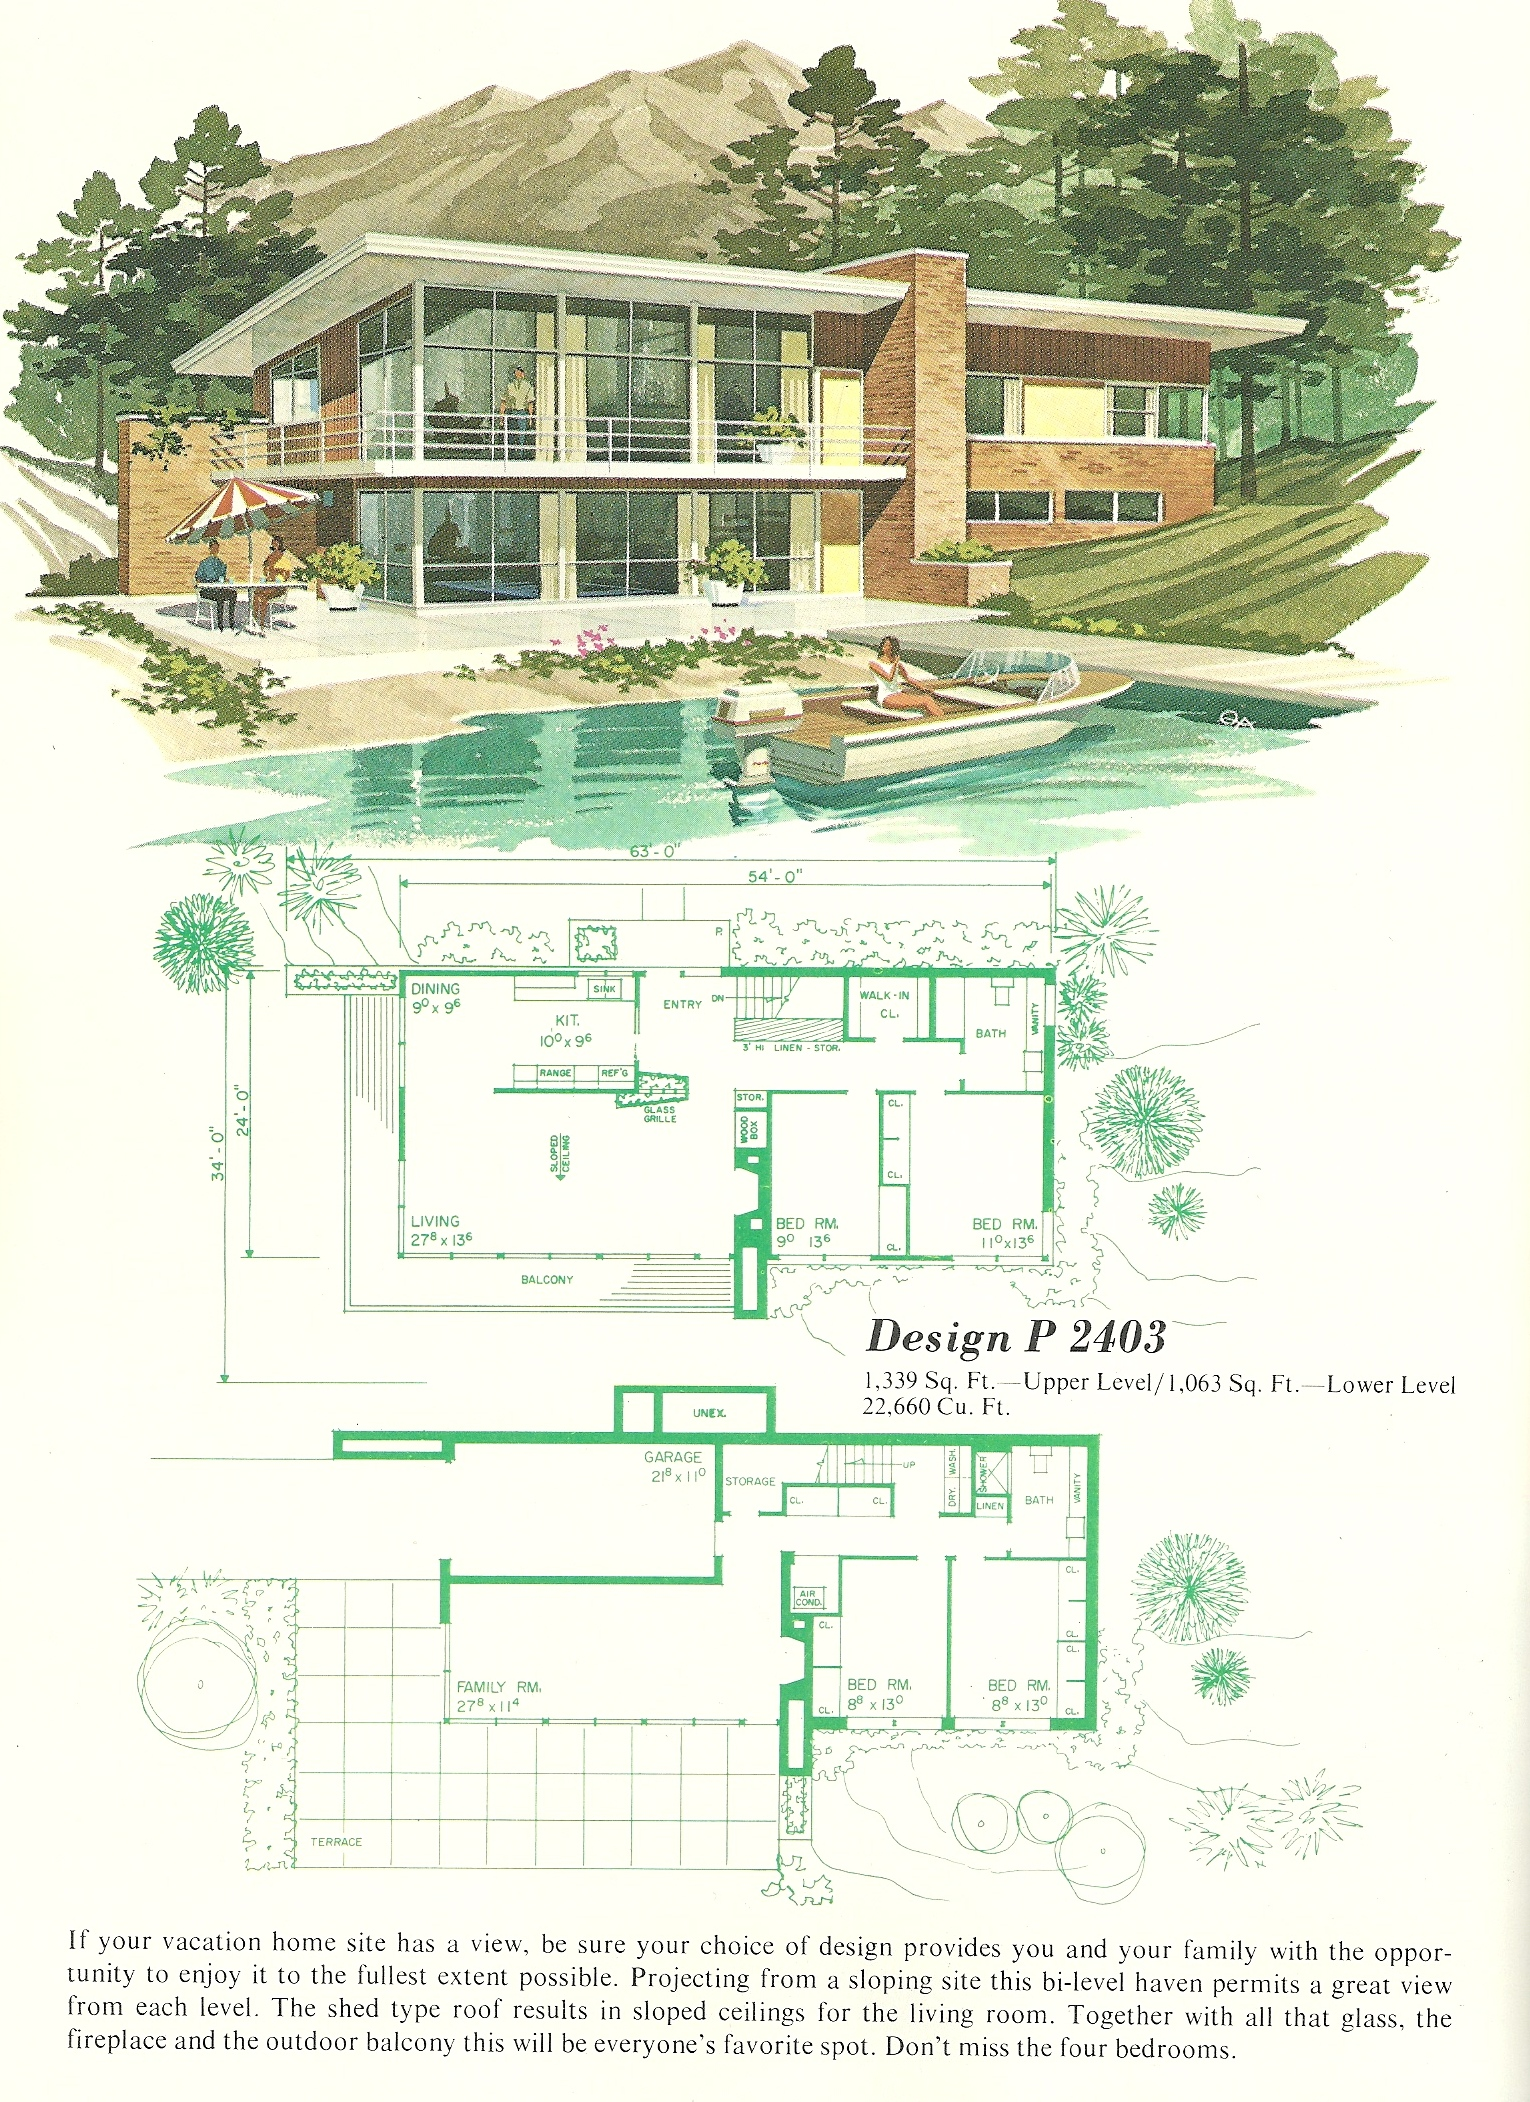 Vintage vacation homes 2403 antique alter ego for 1960 ranch house plans